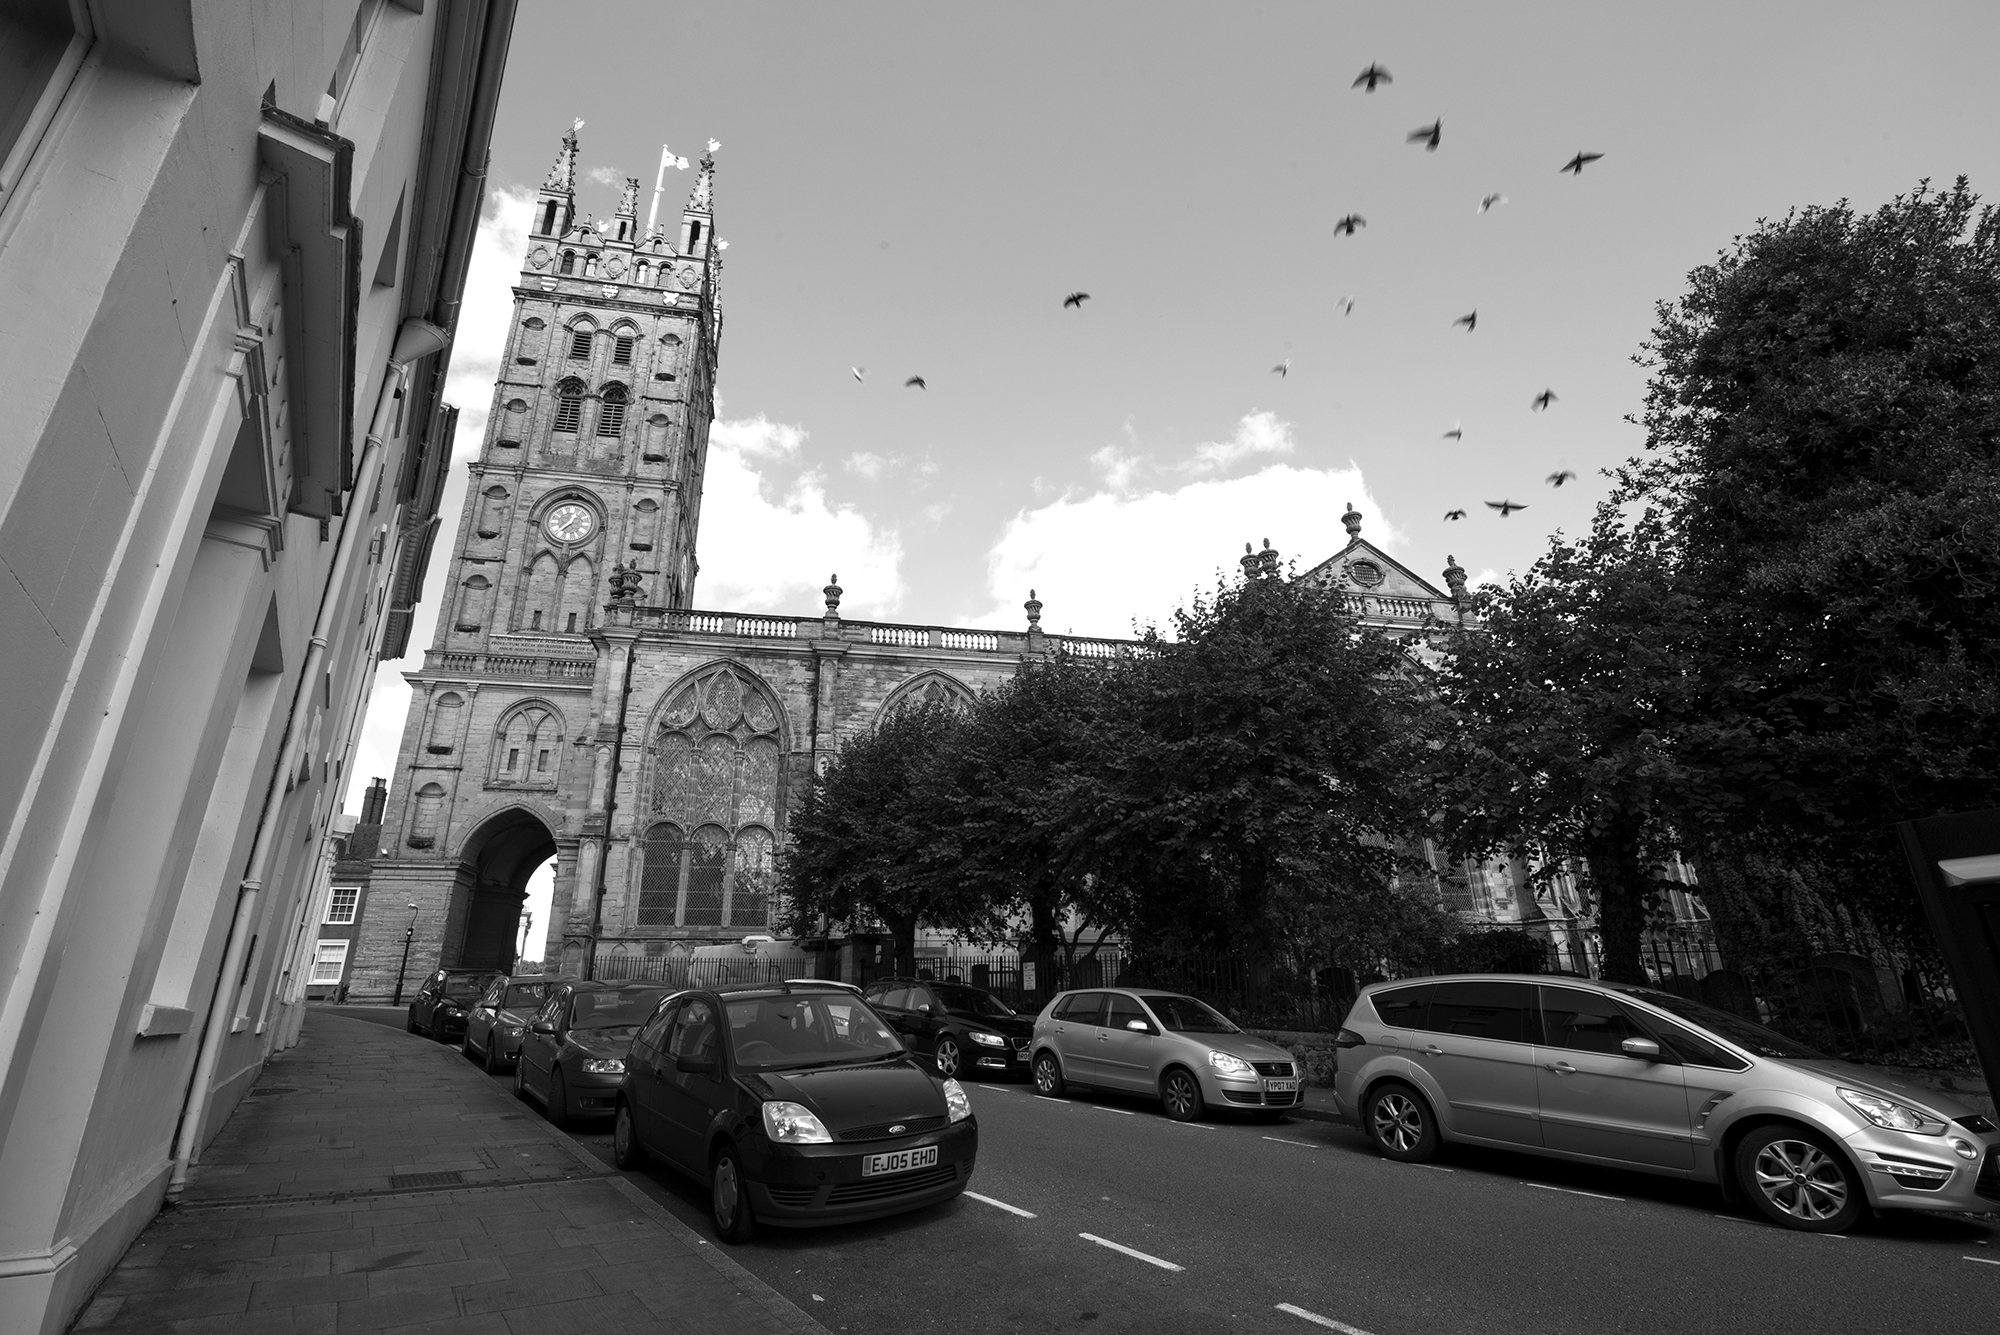 St Mary's Tower Warwick